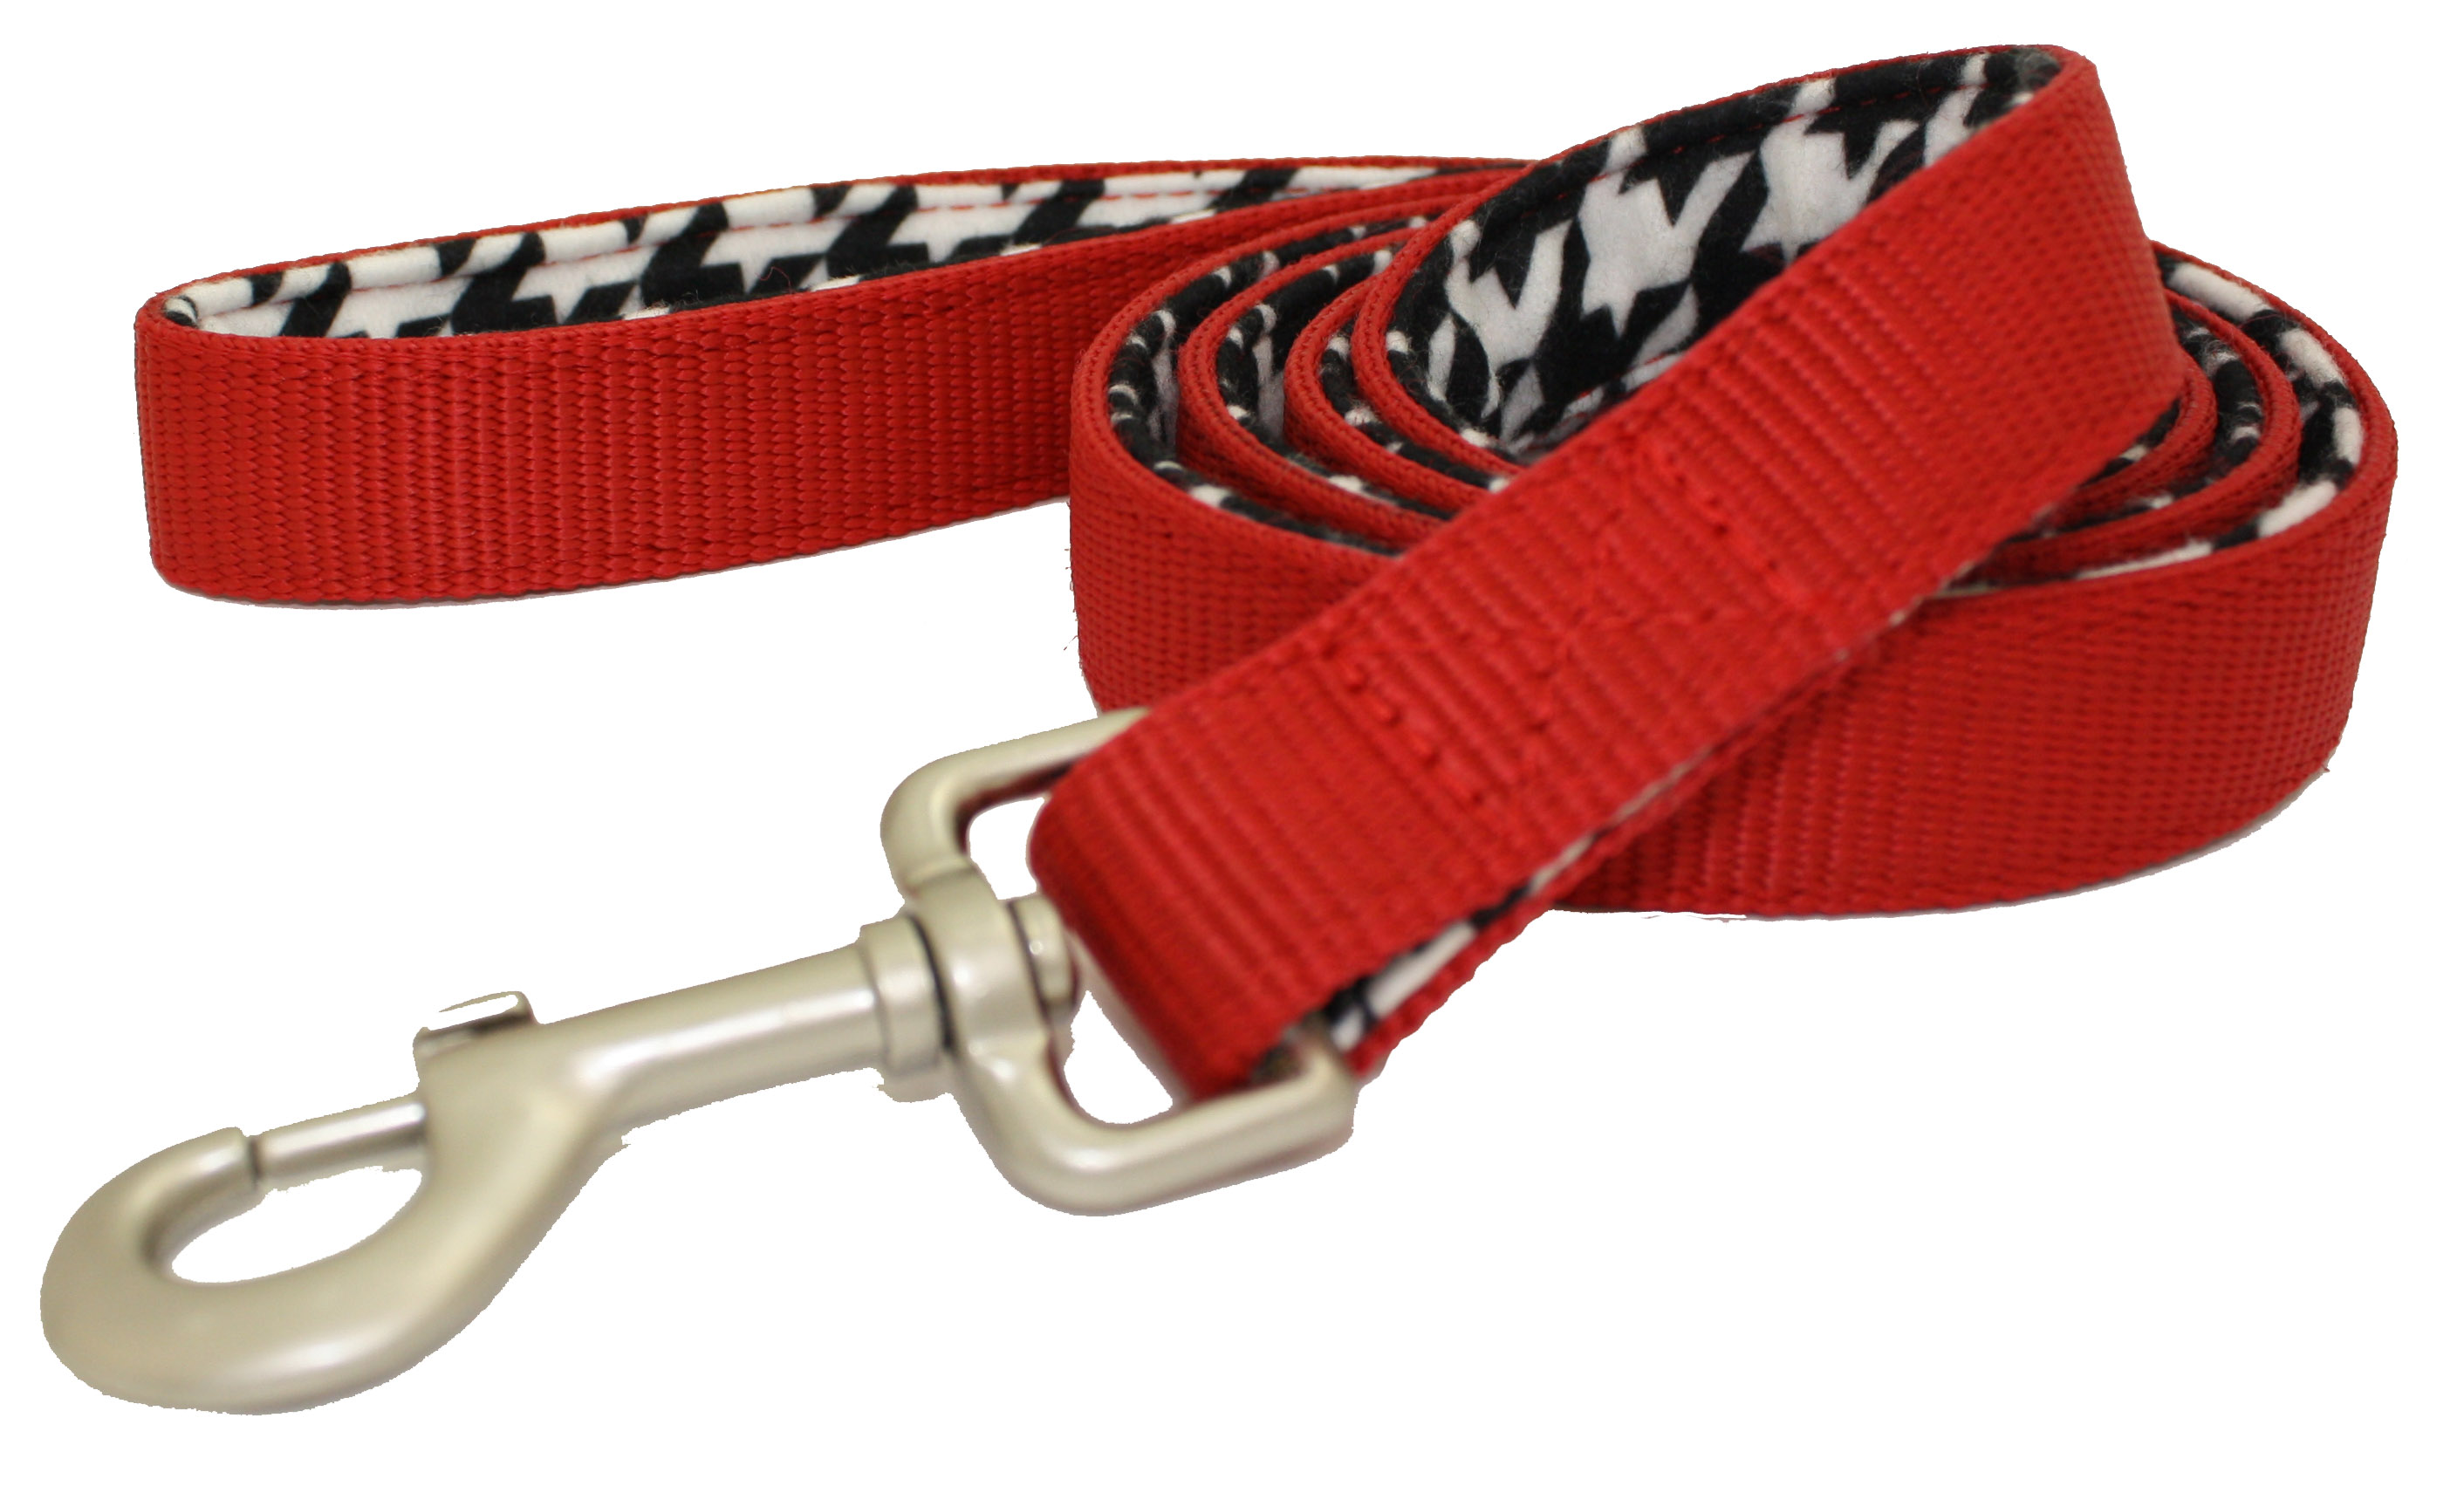 Lami-Cell Houndstooth Dog Leash